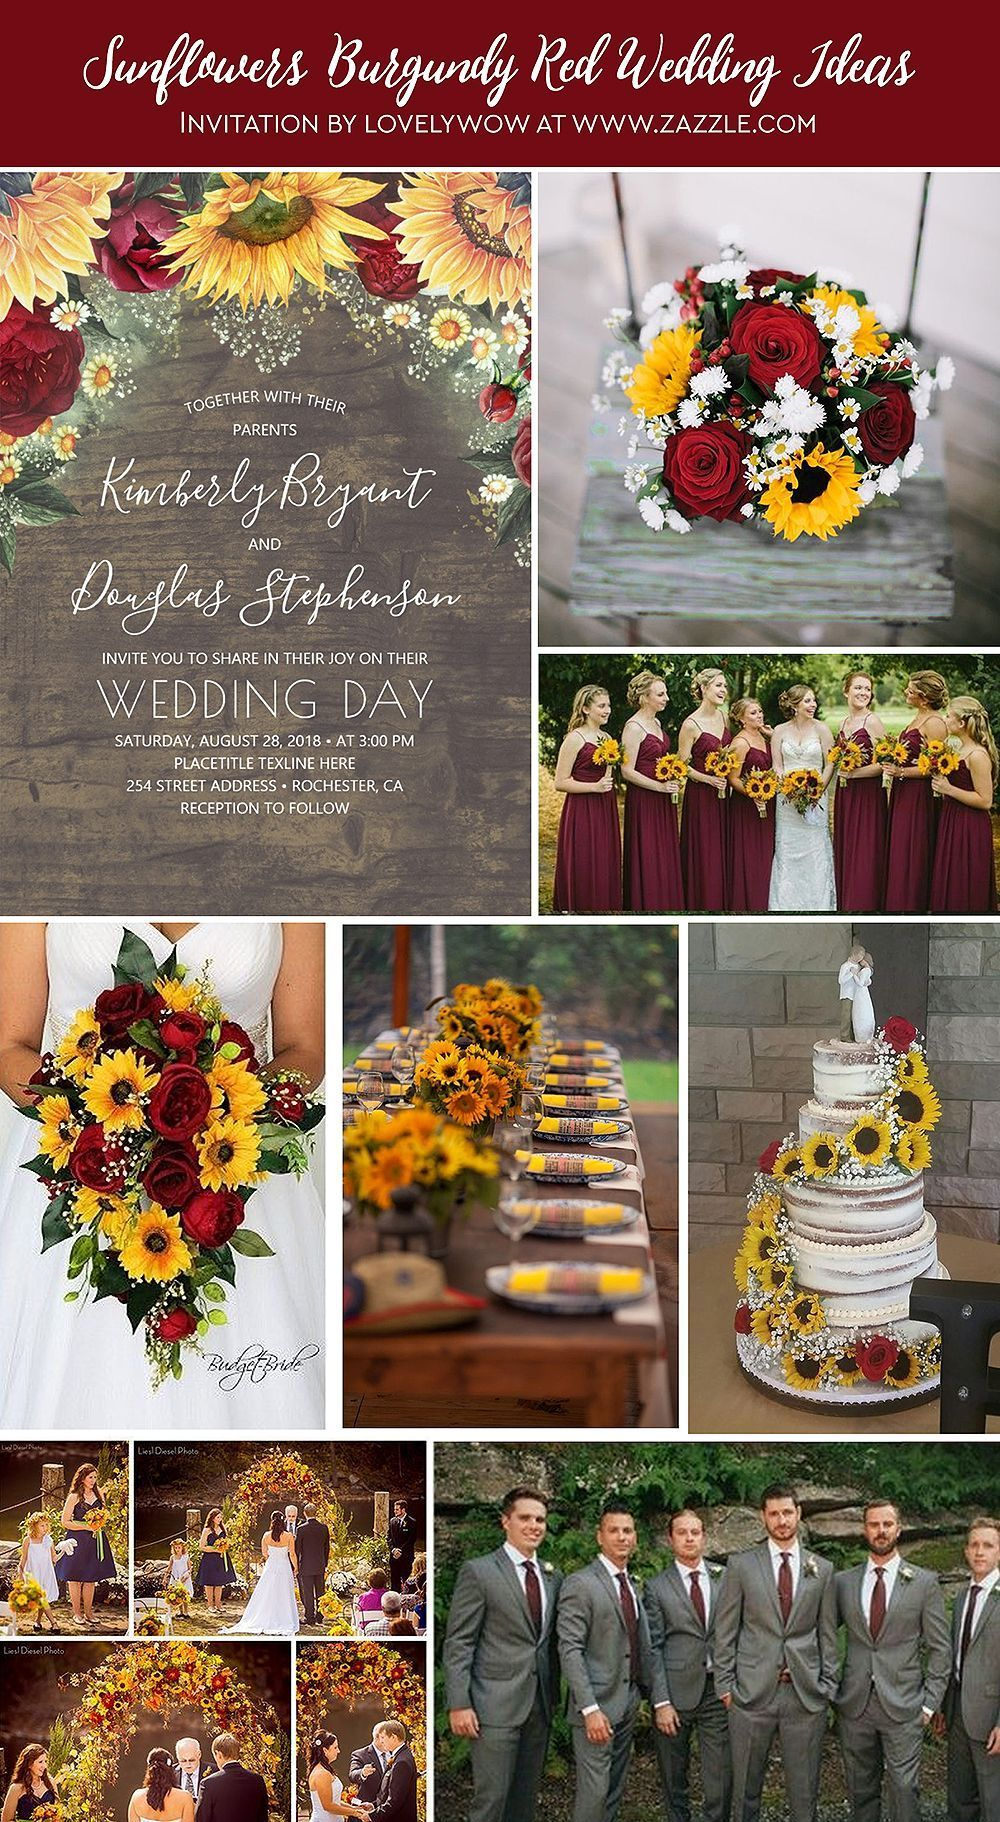 16 wedding Burgundy country ideas